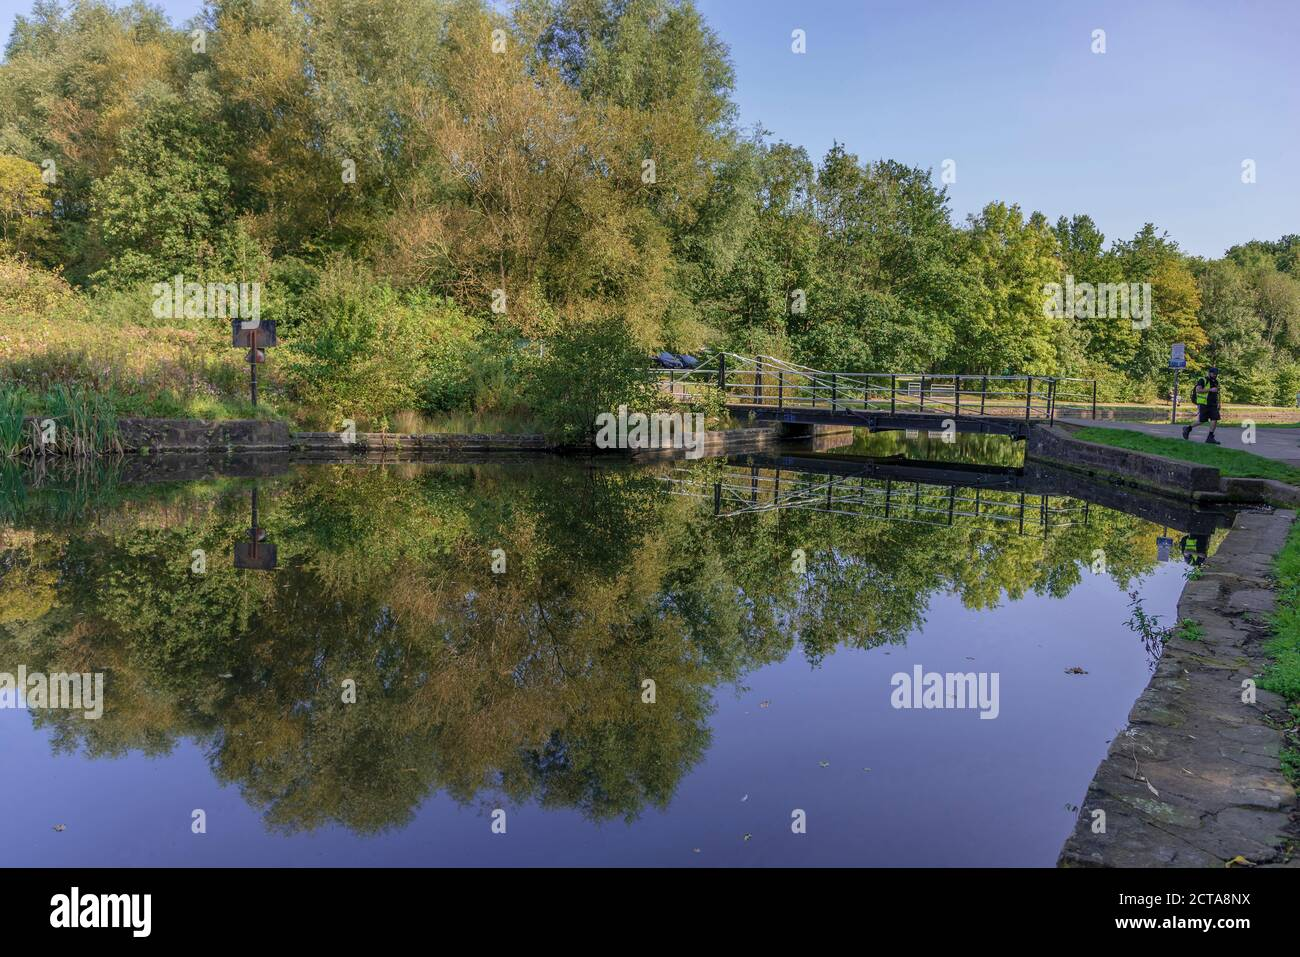 The old canal in Sankey Valley park at Earlestown. The park is a linear country park that runs fom Widnes to Haydock. Stock Photo